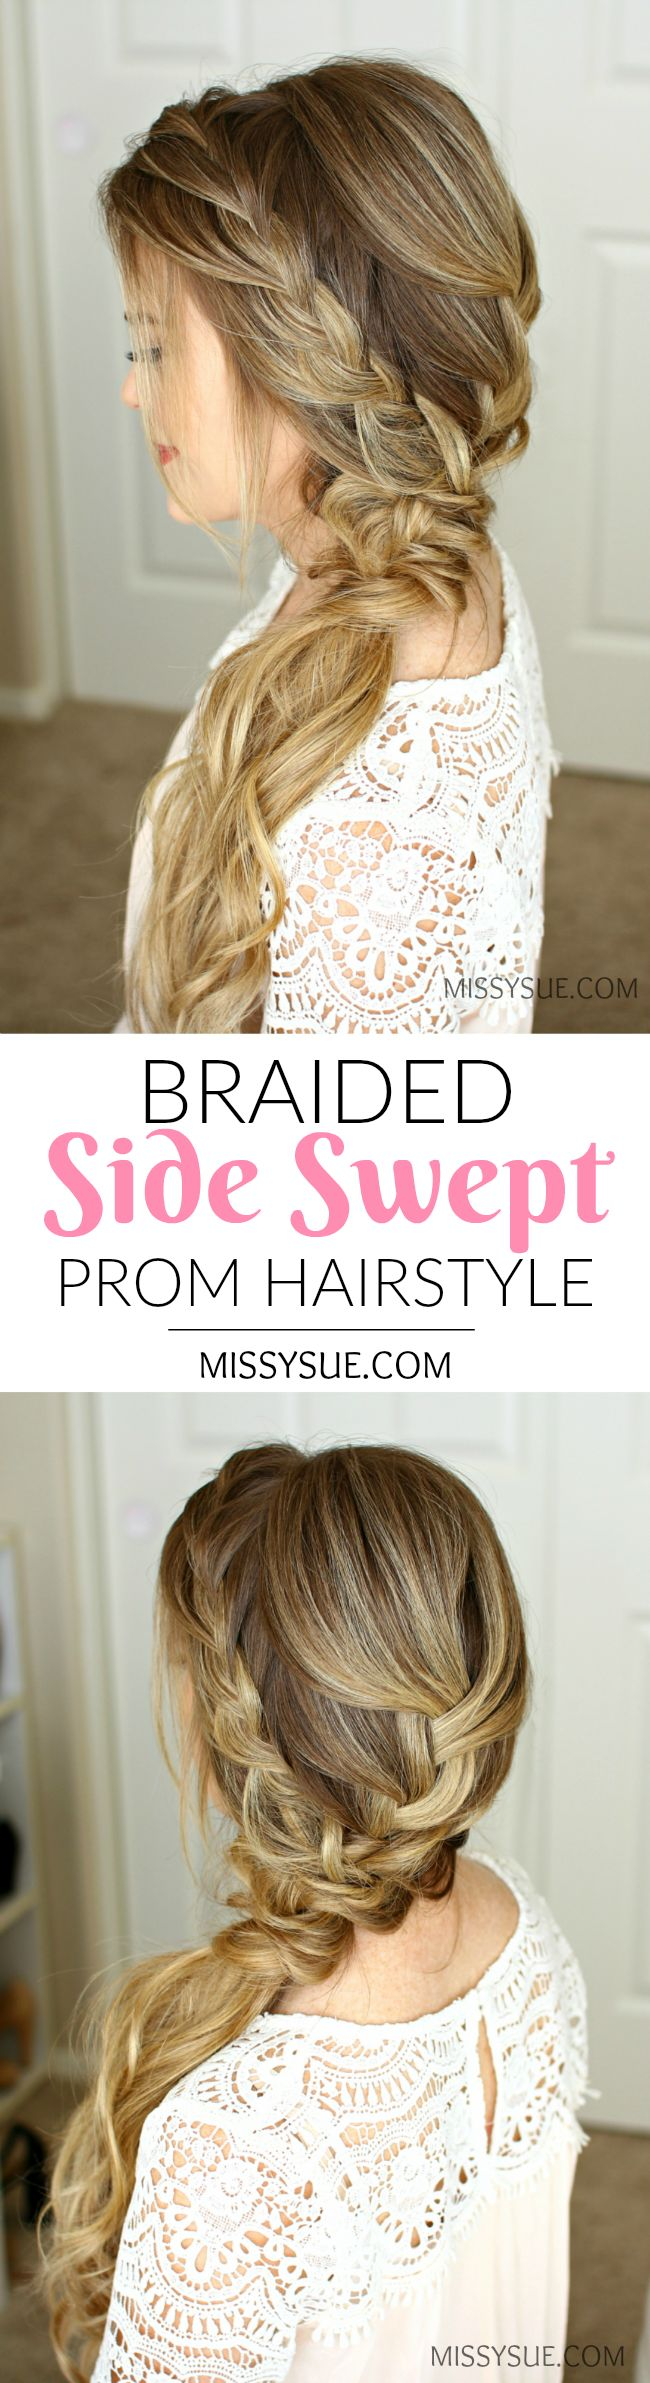 best images about prom hair on pinterest block heels curly